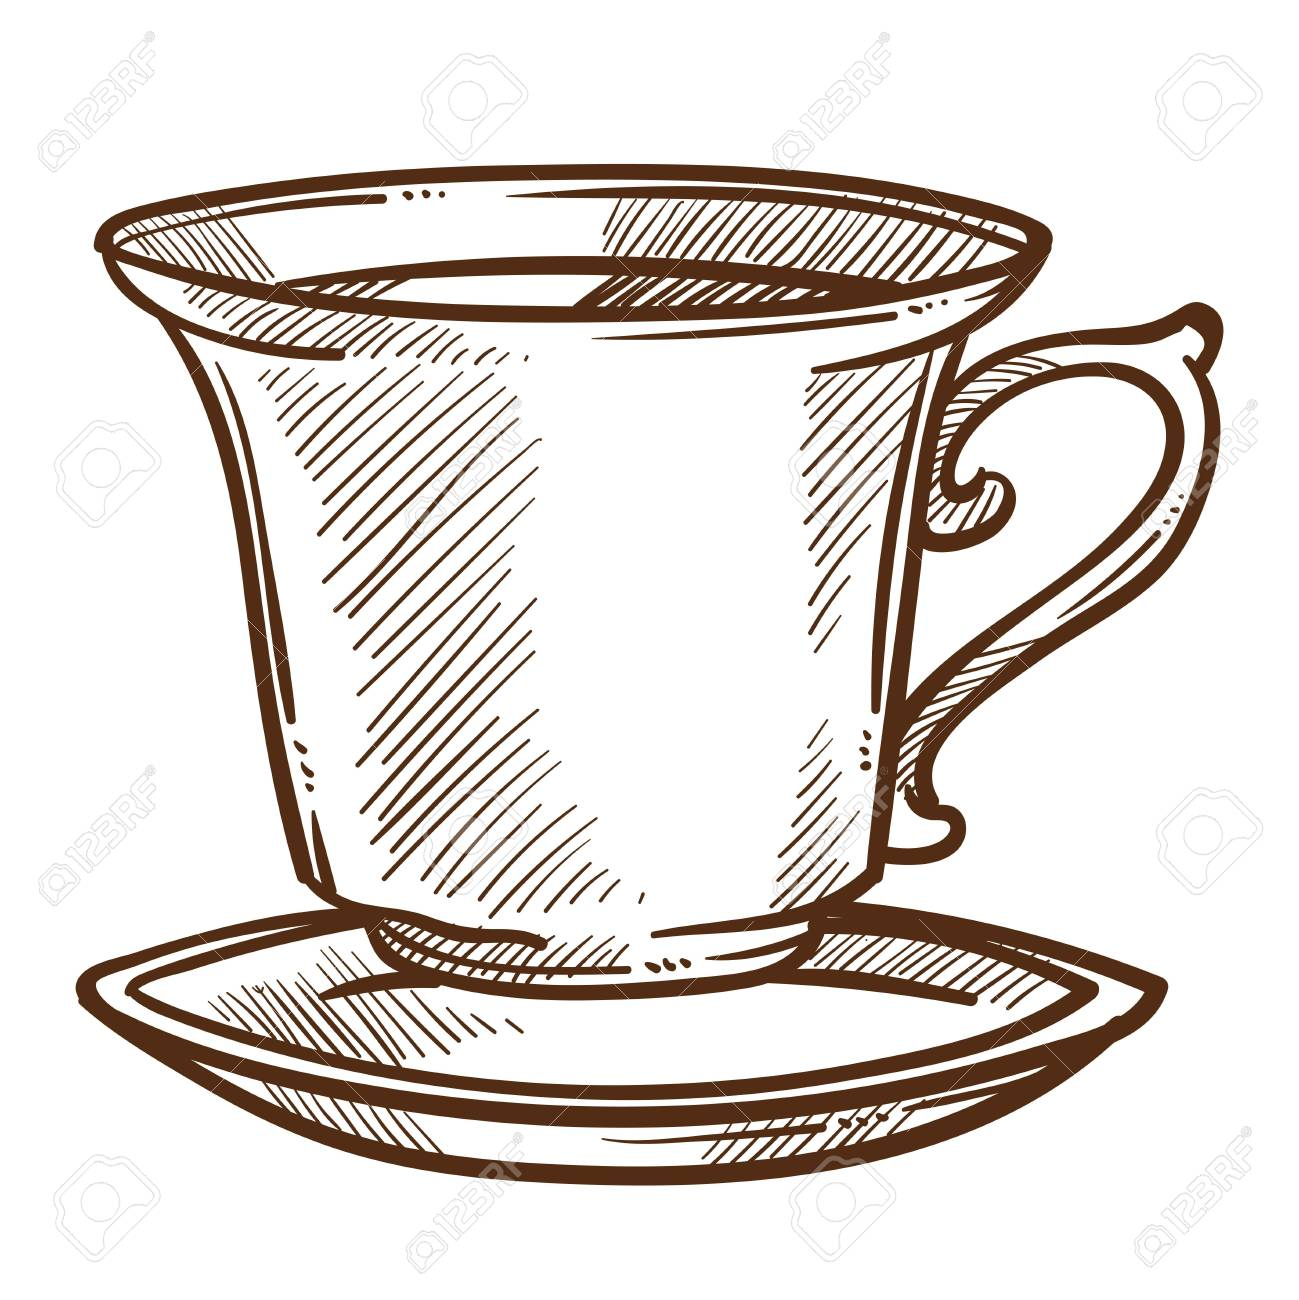 Hot Drink Coffee Or Tea Cup On Saucer Isolated Sketch Vector Royalty Free Cliparts Vectors And Stock Illustration Image 124856176